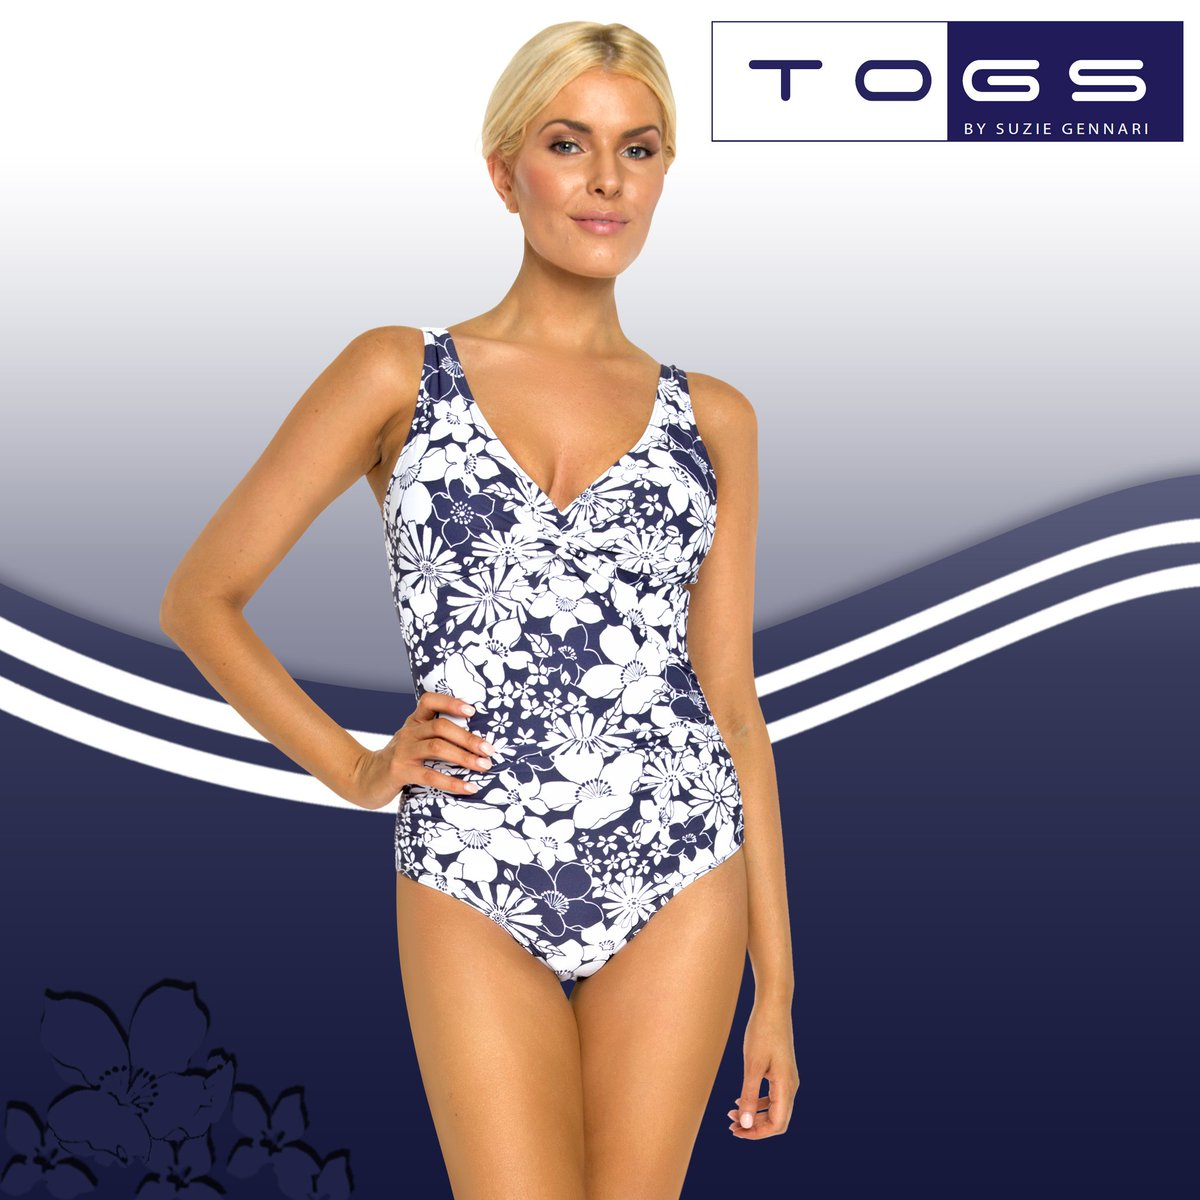 08f0005de1 #Swimnsport is more than happy to announce that #Togs is at their stores.  #happydayspic.twitter.com/dNP8ClqWk9